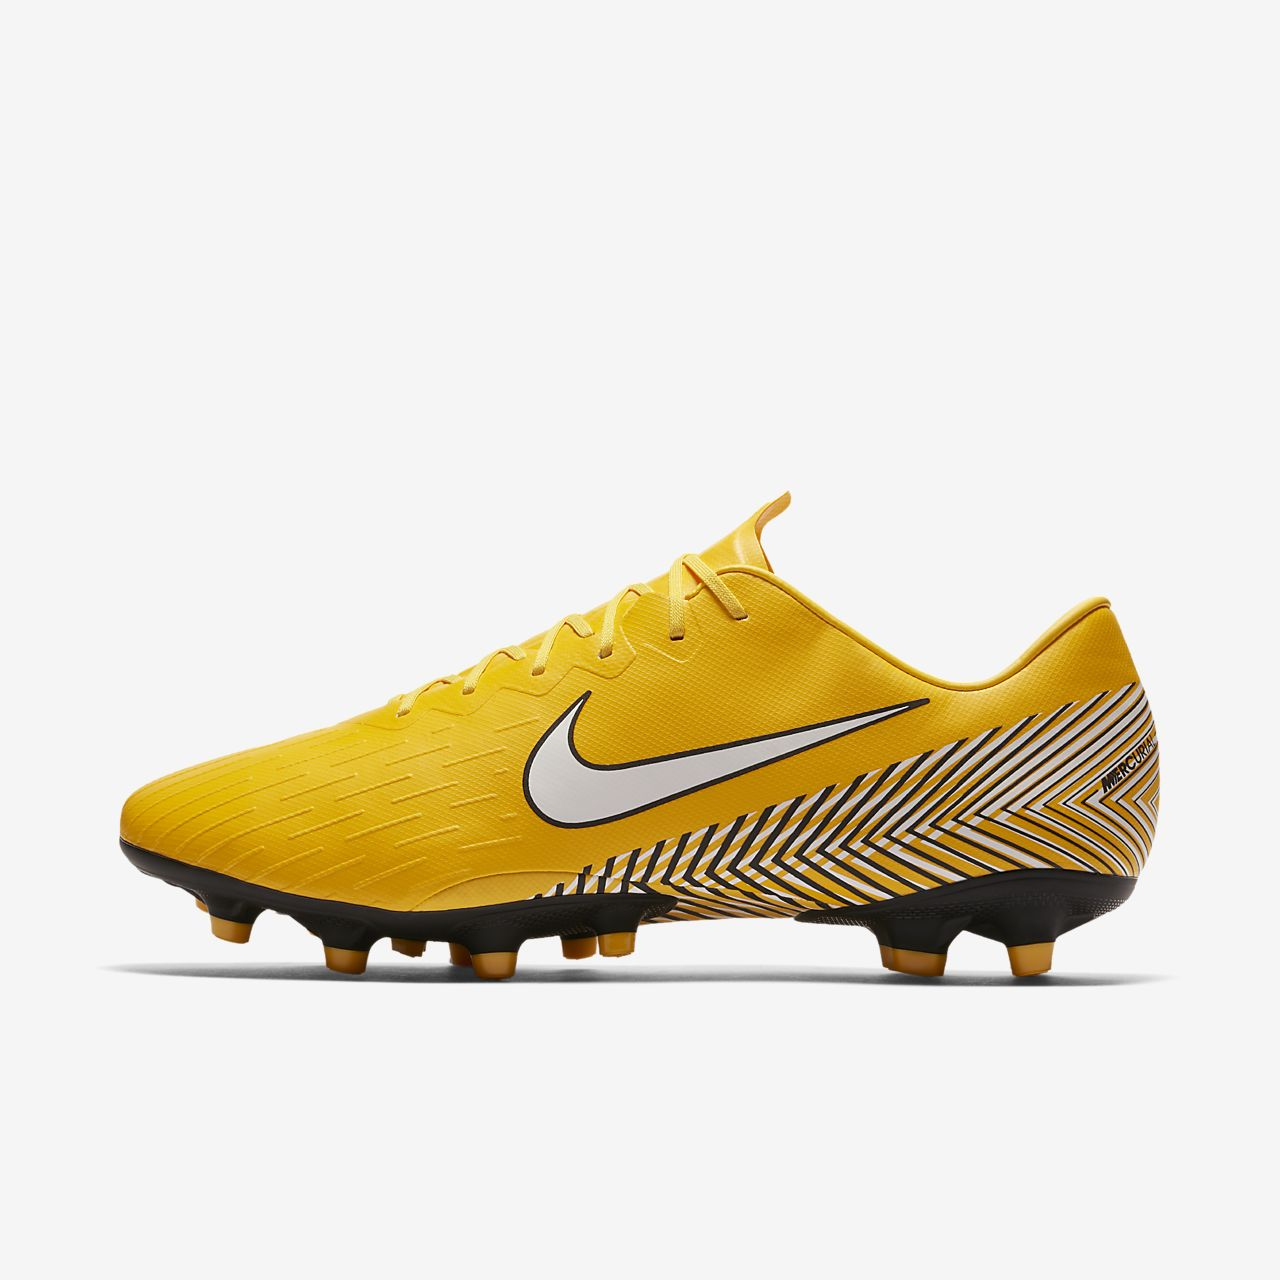 Nike Mercurial Vapor XII Pro Neymar AG-PRO Artificial-Grass Football Boot